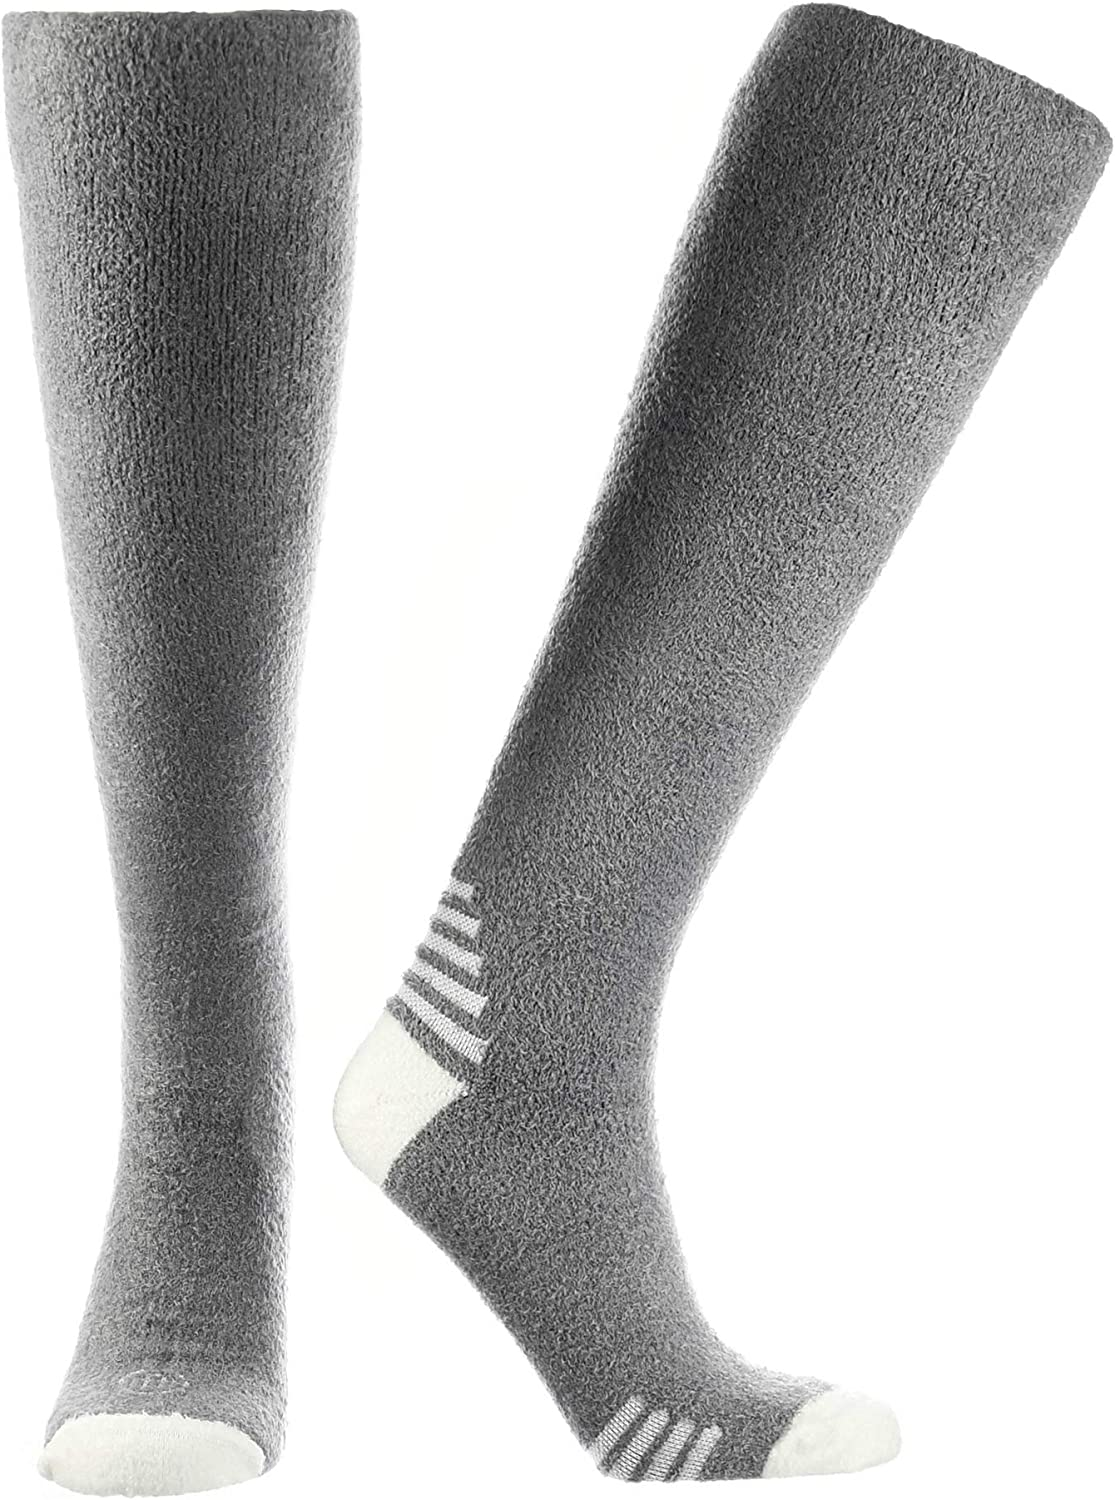 Doctor's Choice Men's Sleeping Socks, Light Cozy Compression Sock, 8-15 mmHg, with Soft, Warm, Fuzzy Features